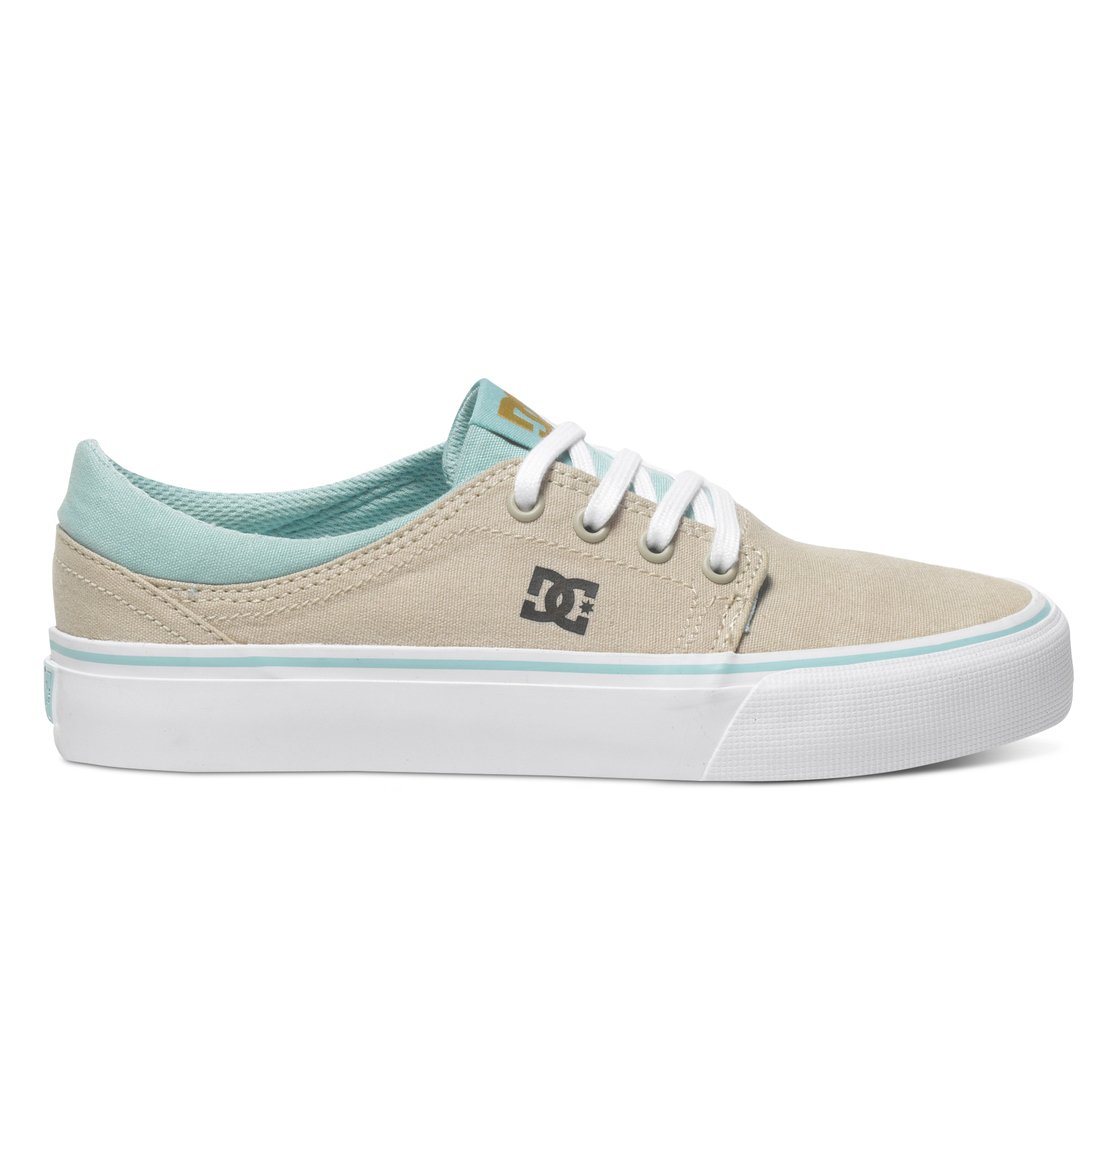 dc shoes trase tx low top shoes for adjs300078 ebay